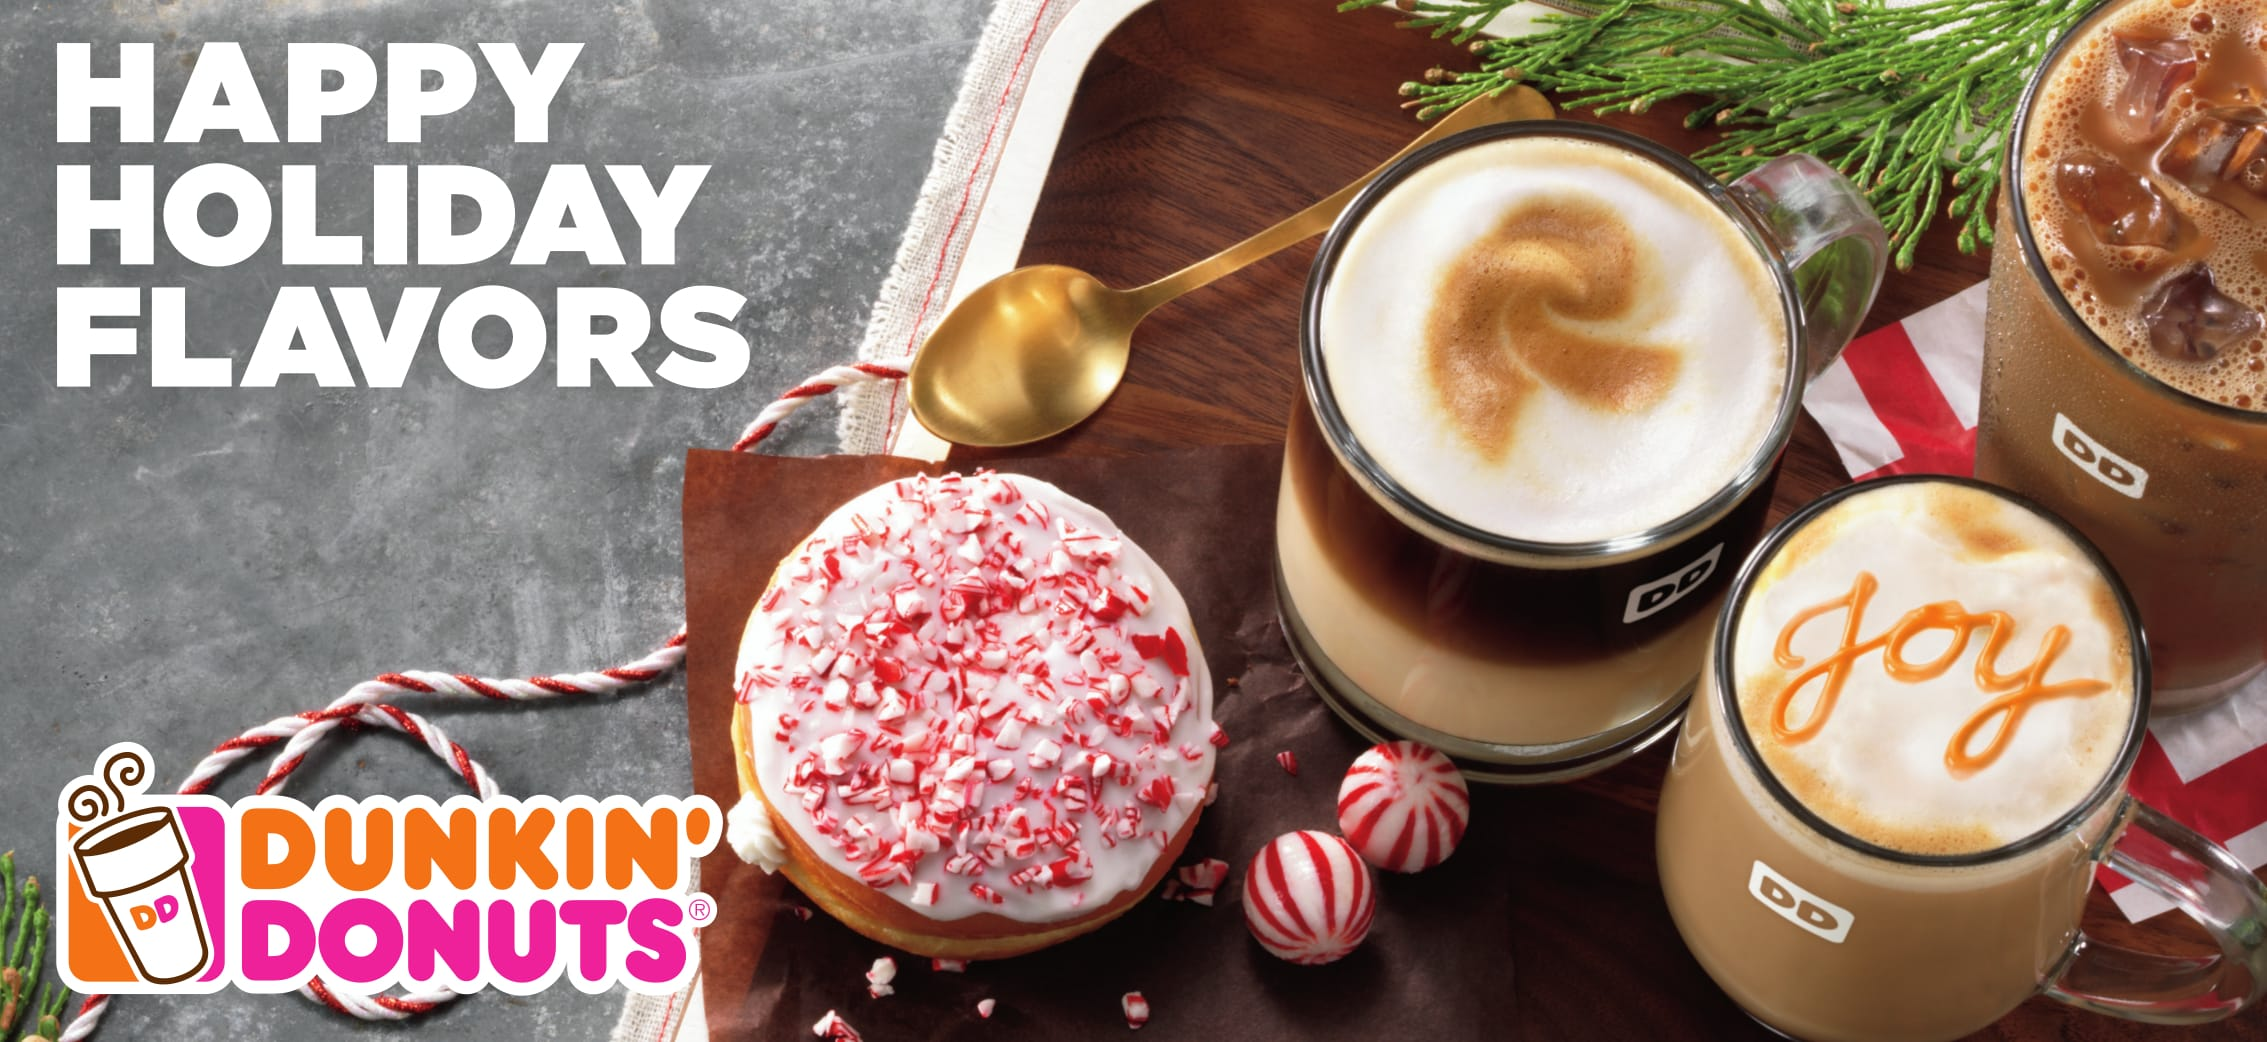 Happier Holidays with Dunkin' Donuts New Lineup of Beverages